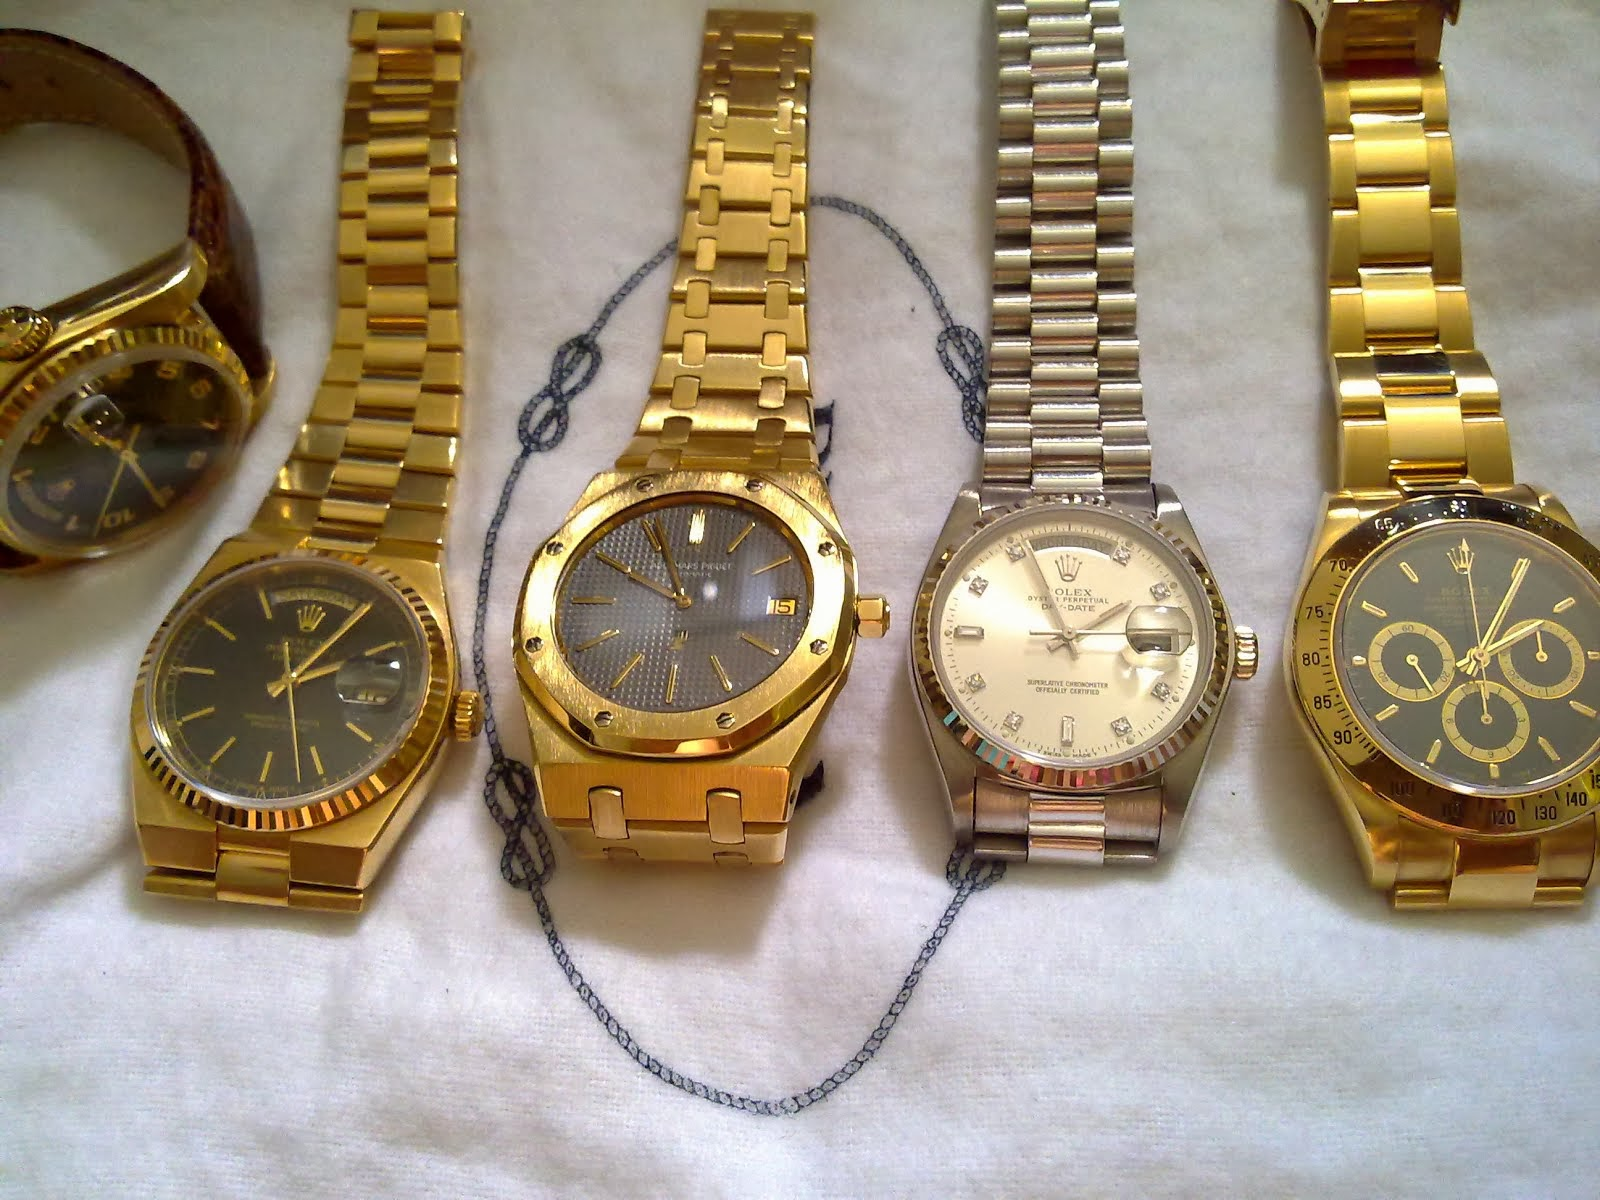 Sham Shui Po Watch Fever's Collection